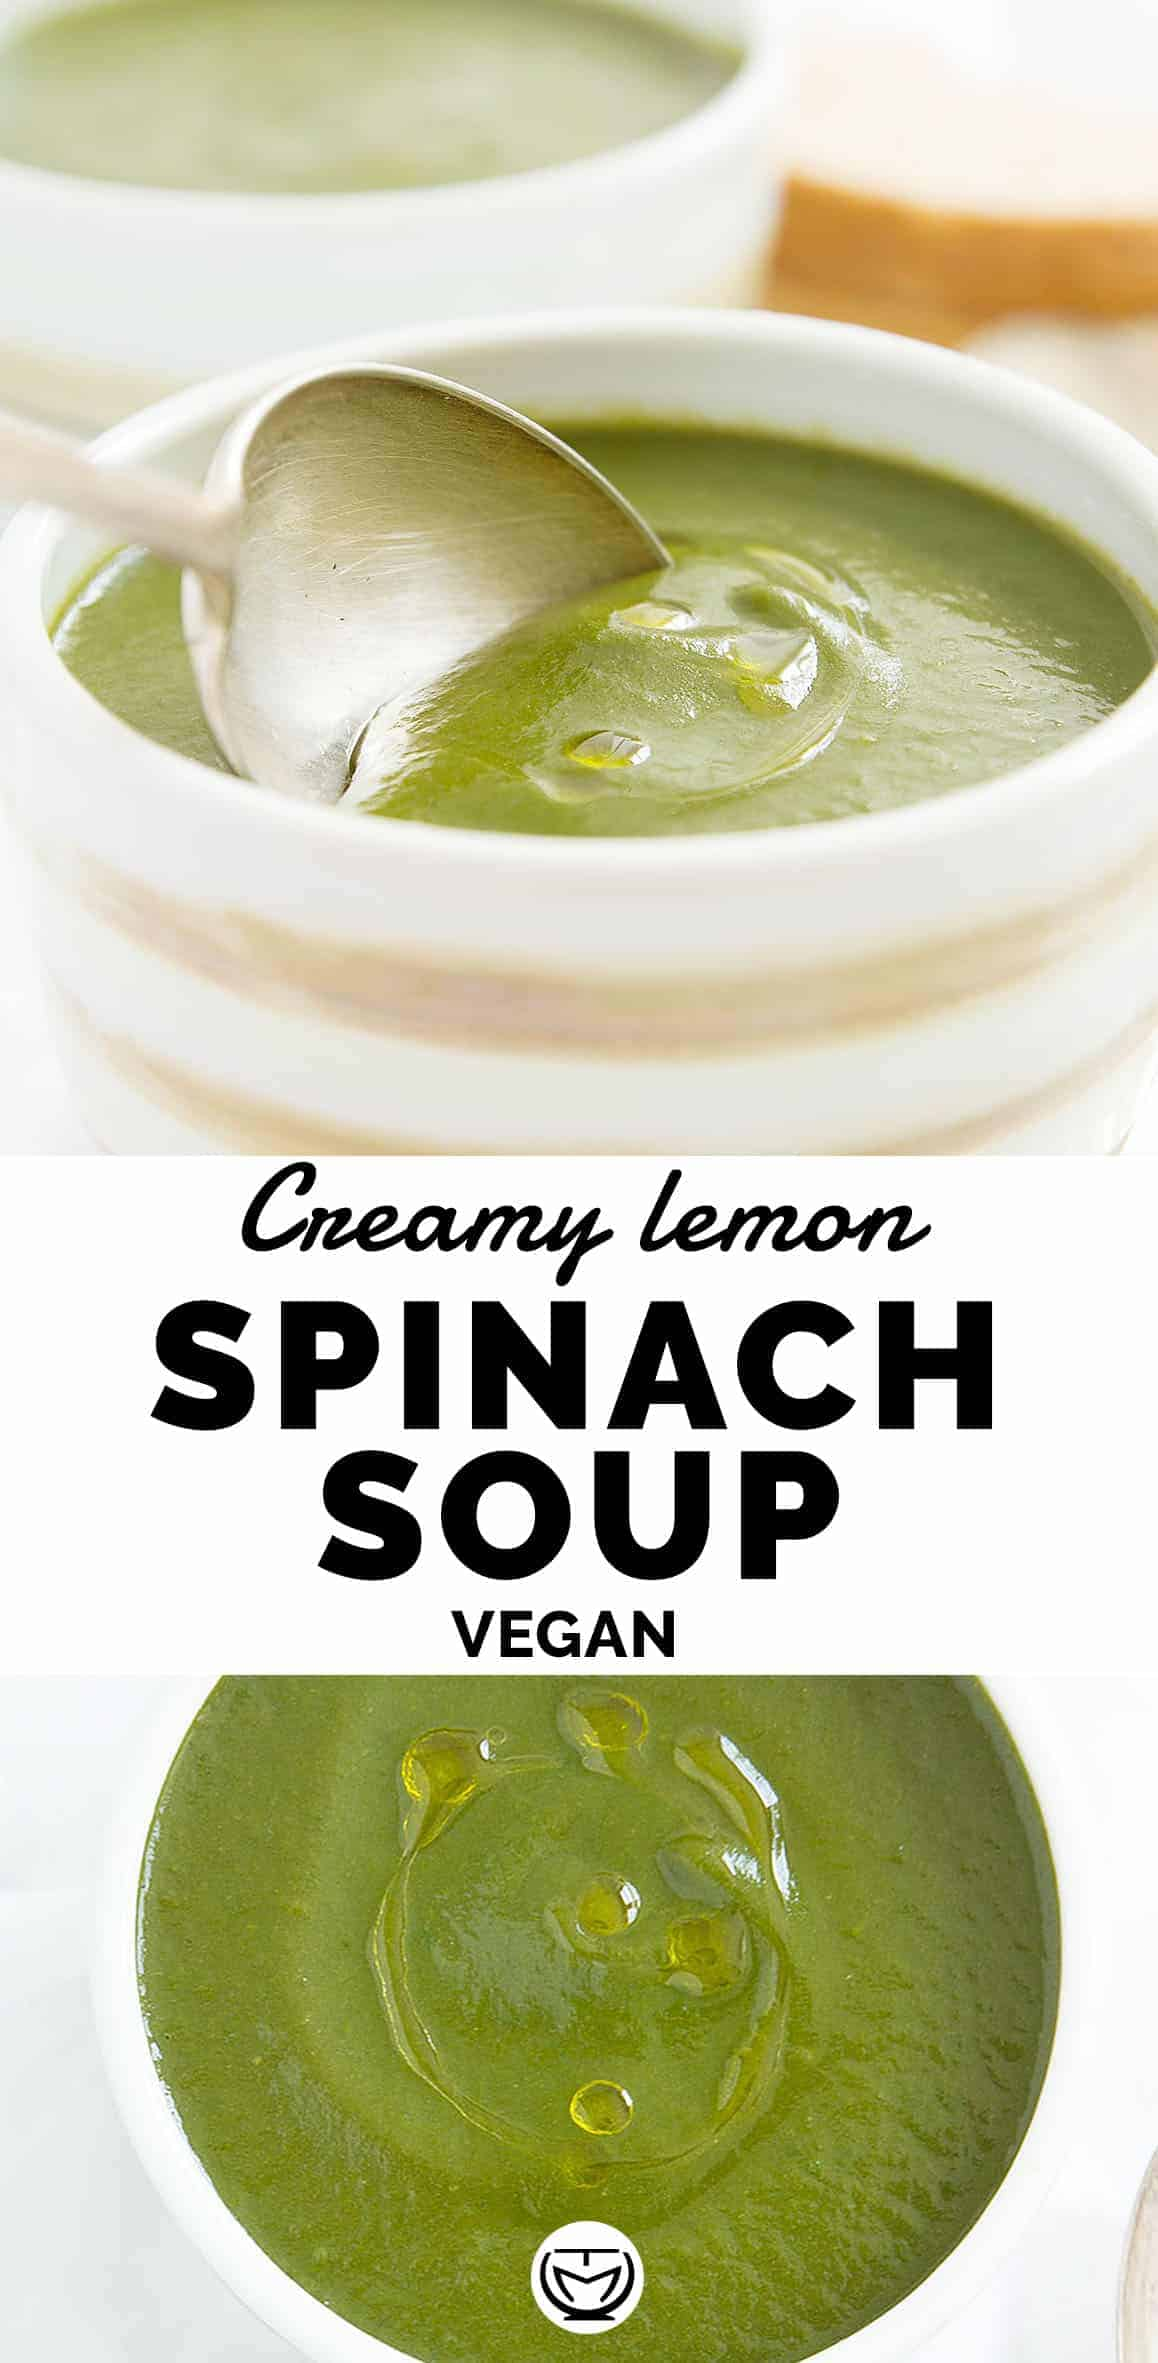 This nourishing creamy vegan spinach soup is one of my go-to recipes when getting weeknight dinners on the table can feel like a chore. It takes just 20 minutes to make, I always have these basic ingredients on hand and there's barely any clean up!